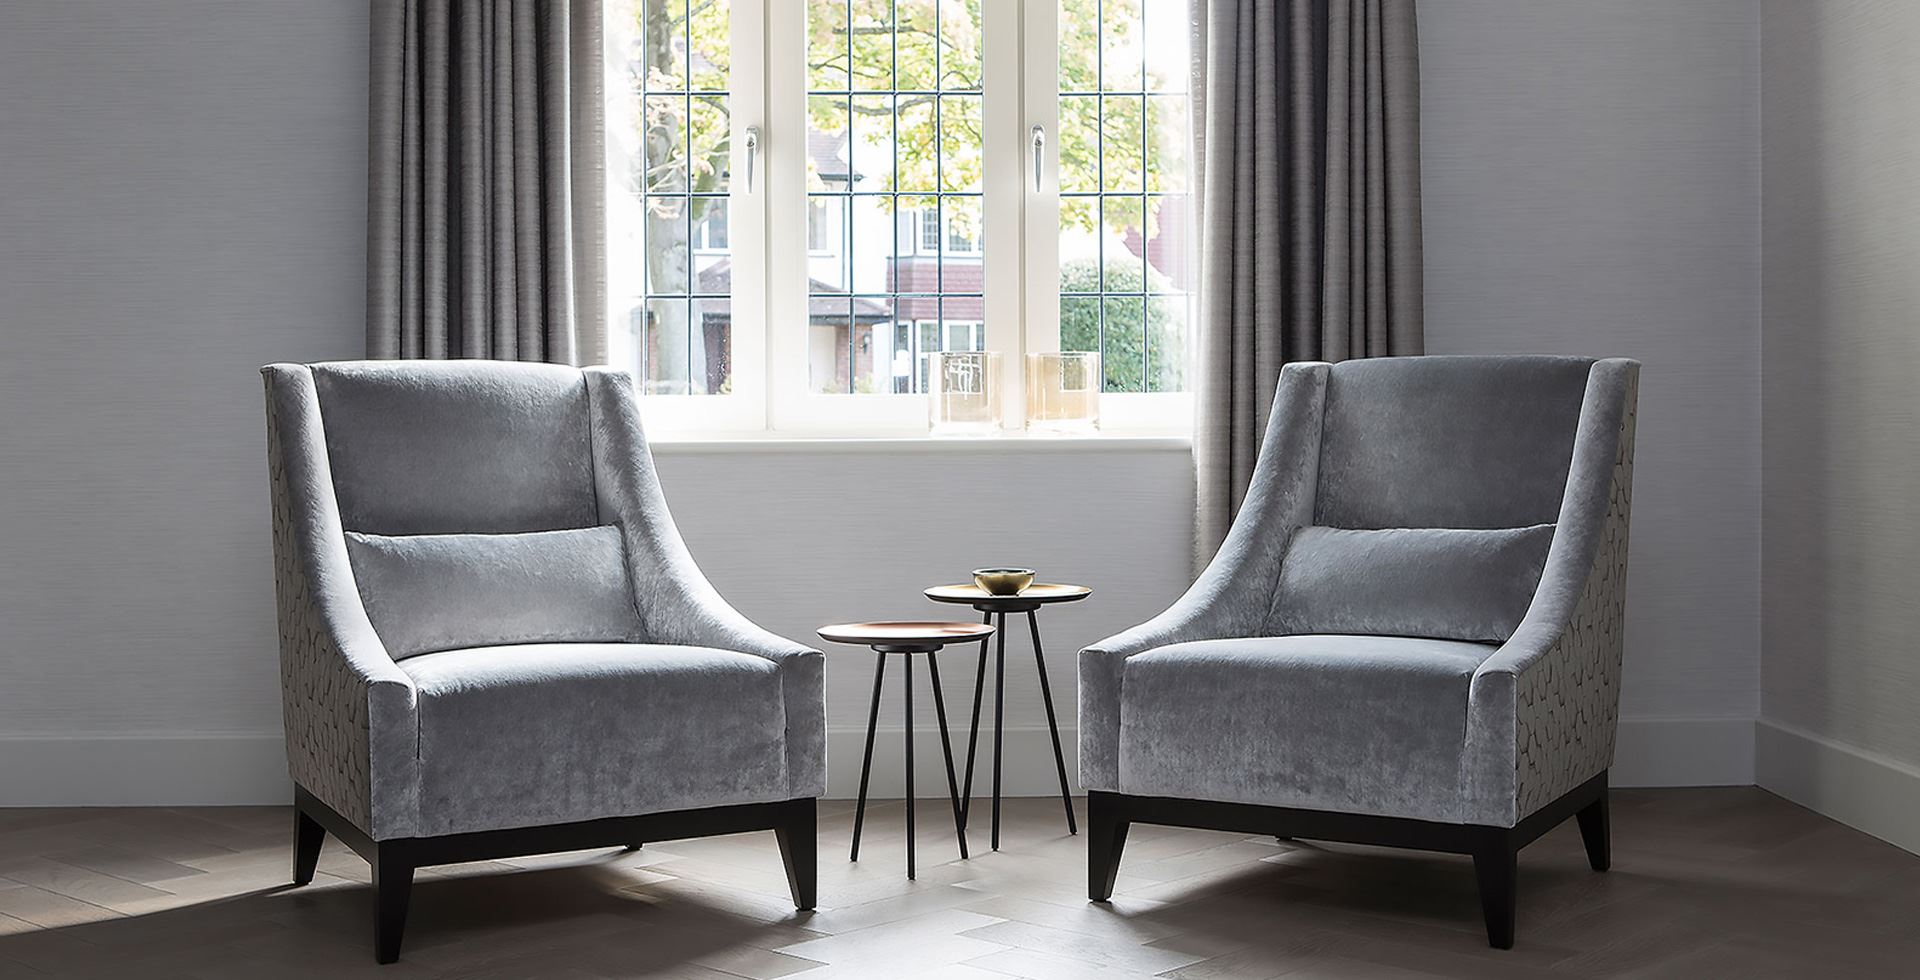 Modern Furniture Uk Online Bespoke Armchairs Uk Modern And Traditional Styles Online